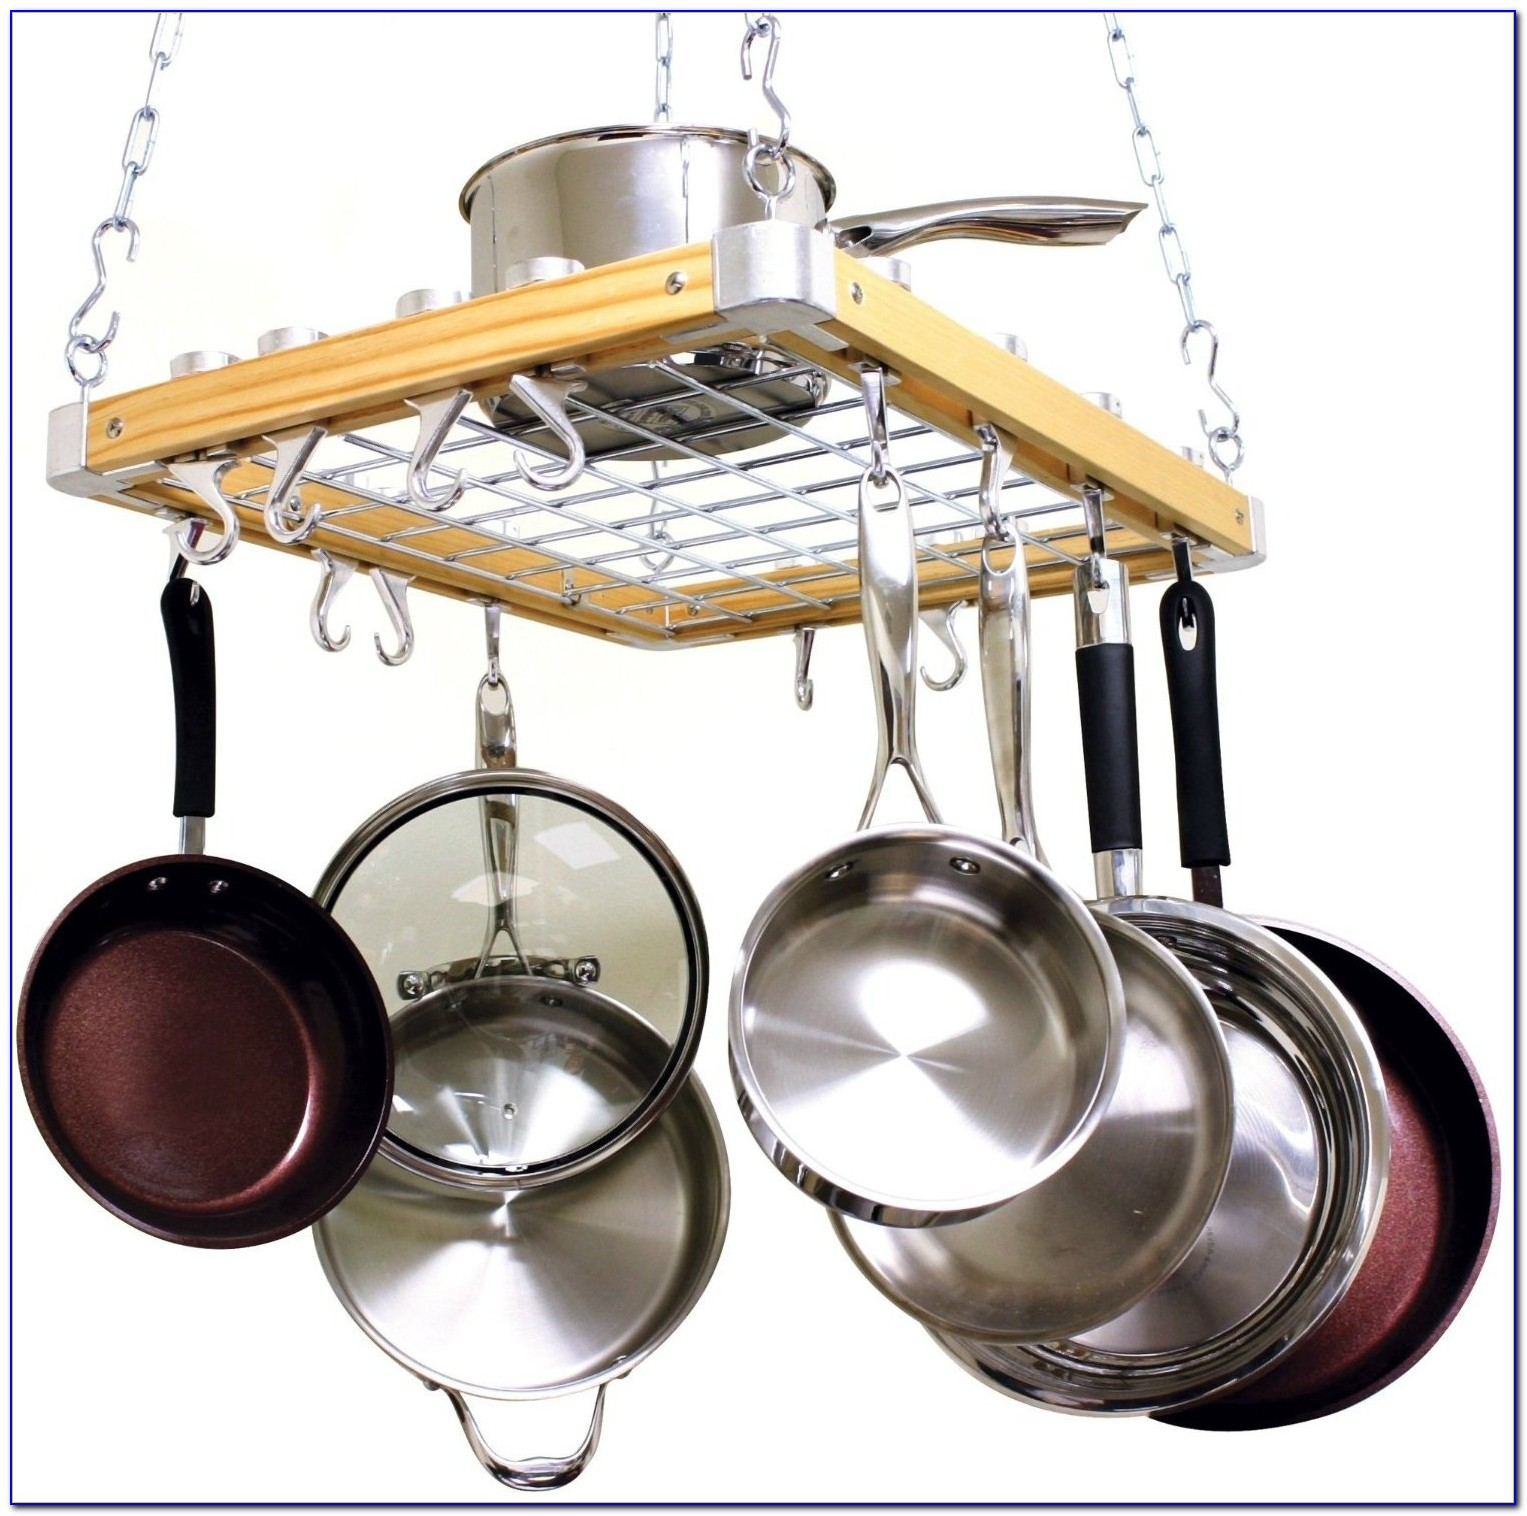 Ceiling Rack For Pots And Pans Uk